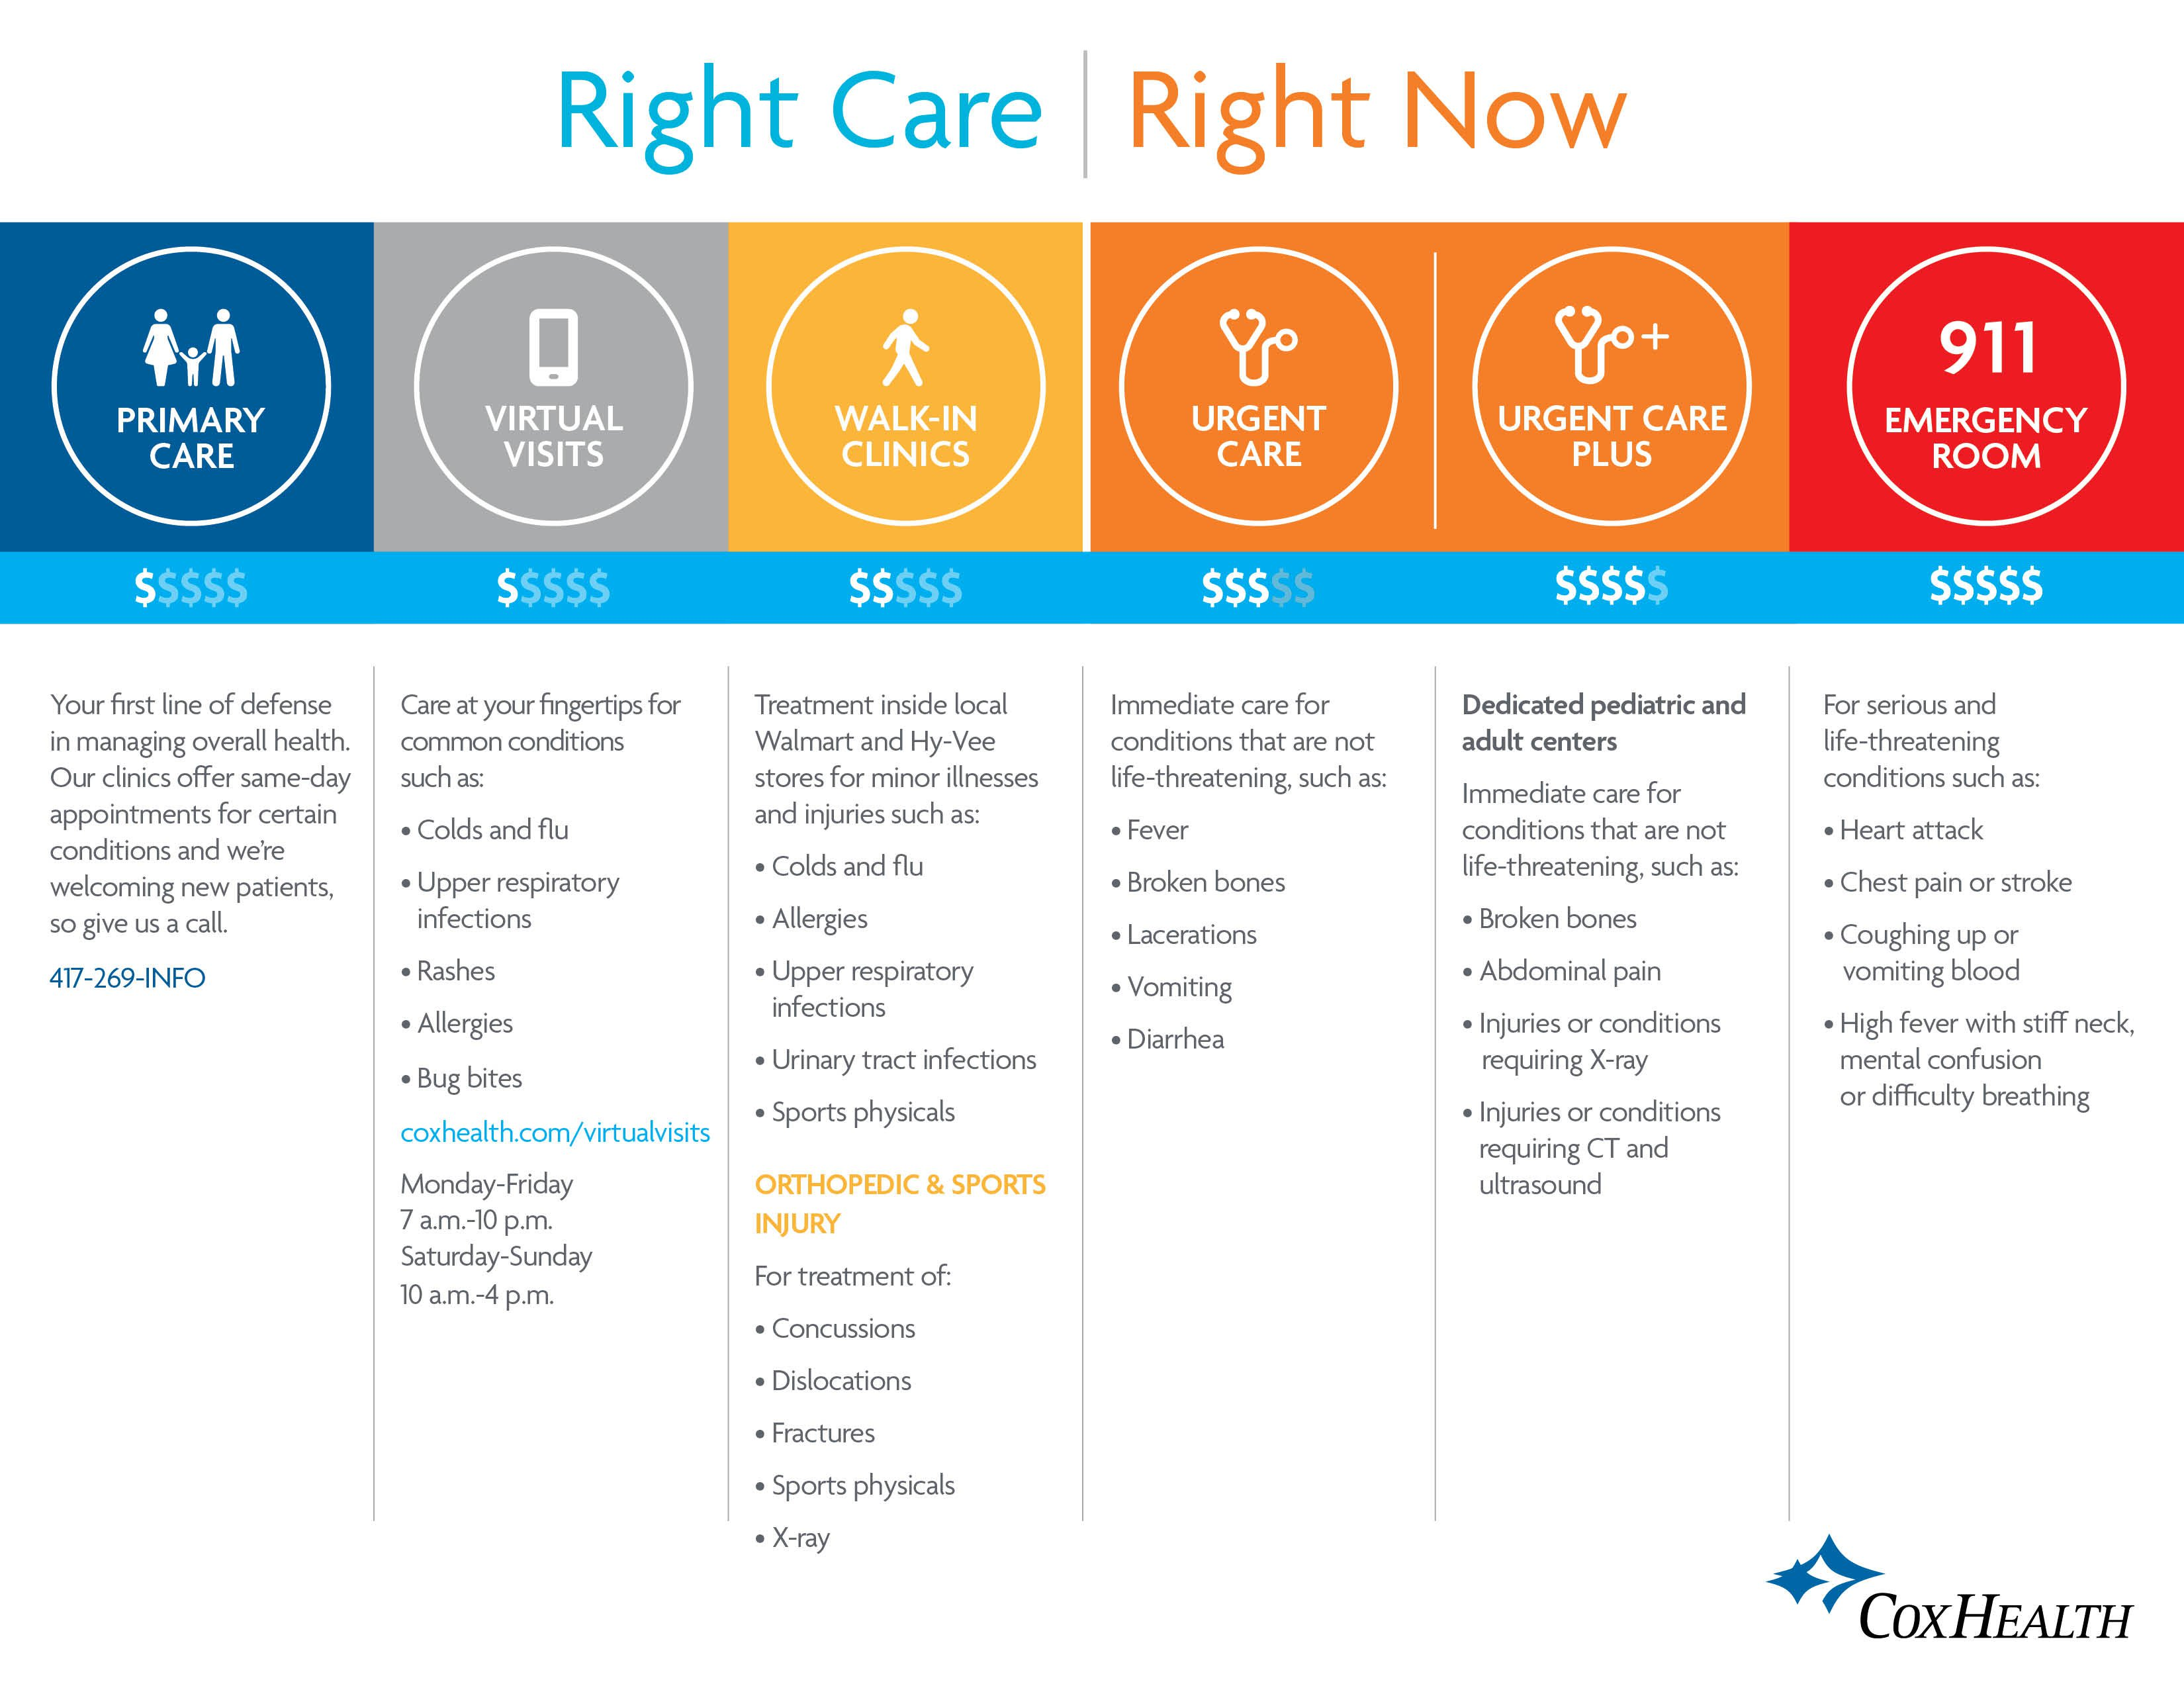 Chart describing the immediate care options available at CoxHealth